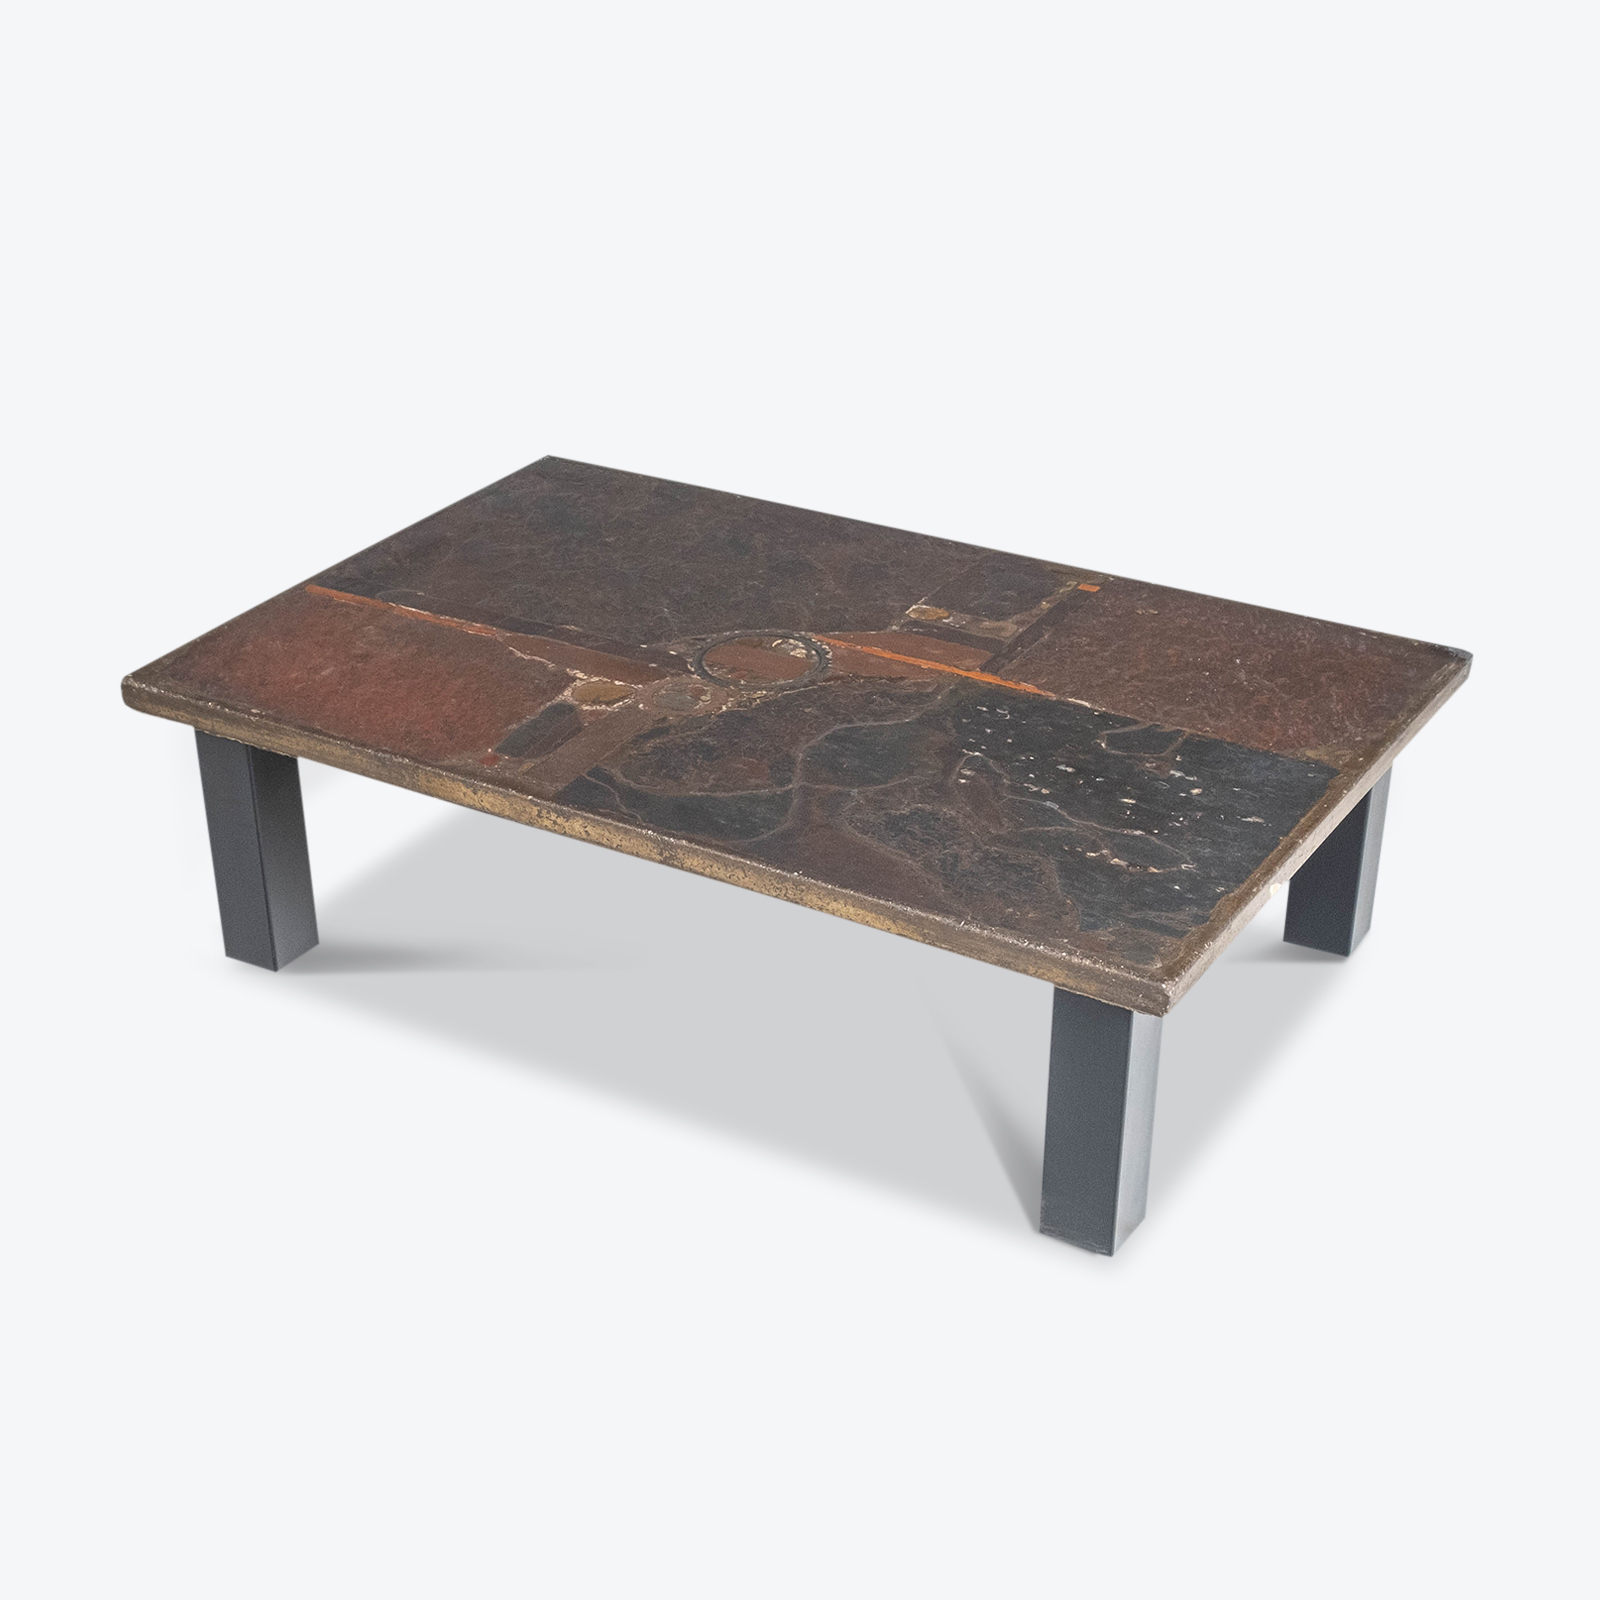 Rectangular Coffee Table By Paul Kingma In Stone And Slate, 1970s, The Netherlands Hero